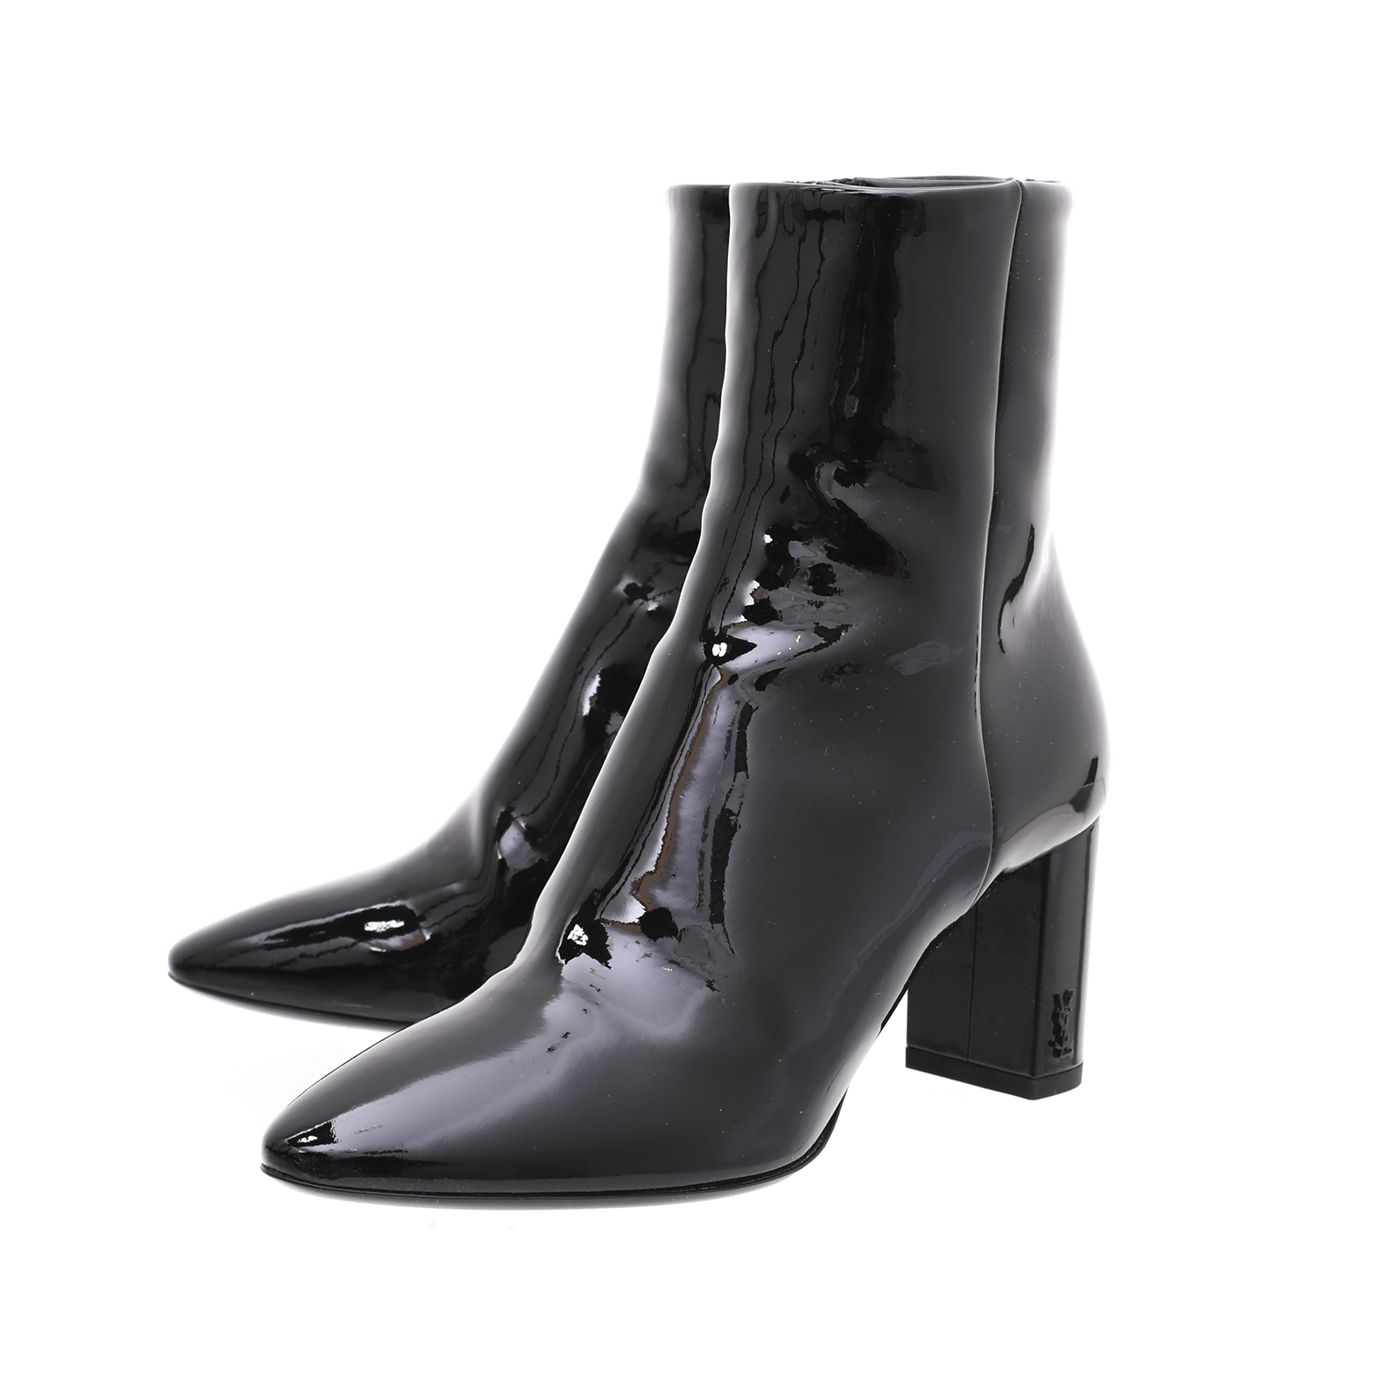 YSL Black Lou Ankle Boot 36.5